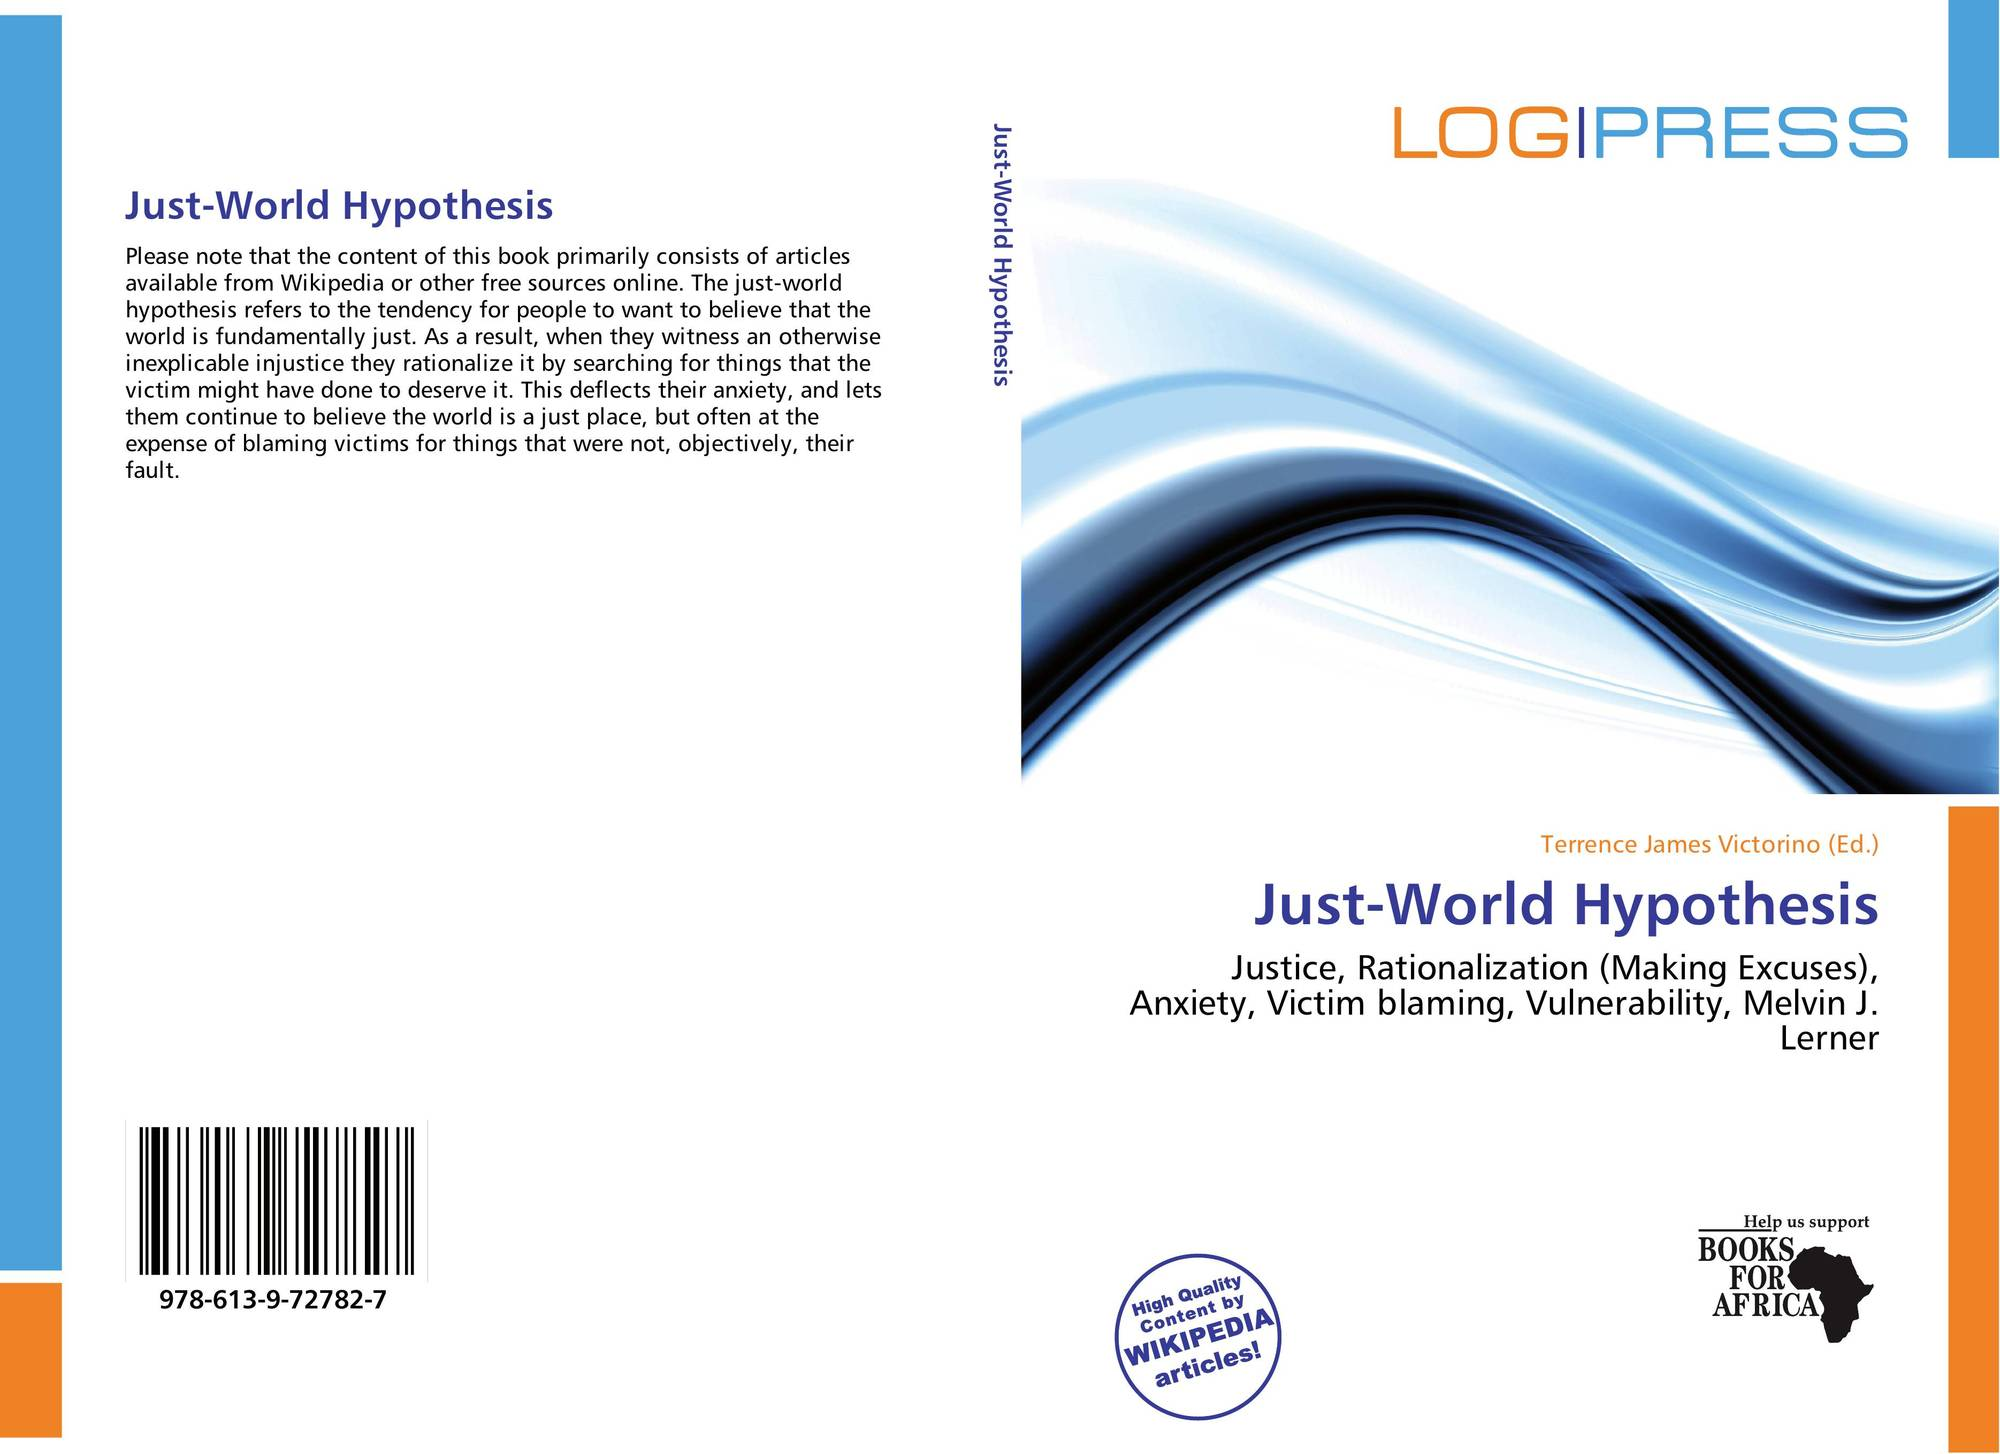 world hypthesis This hypothesis was the work of pre-world war ii german and austrian researchers and came of age in the us in the 1950s.